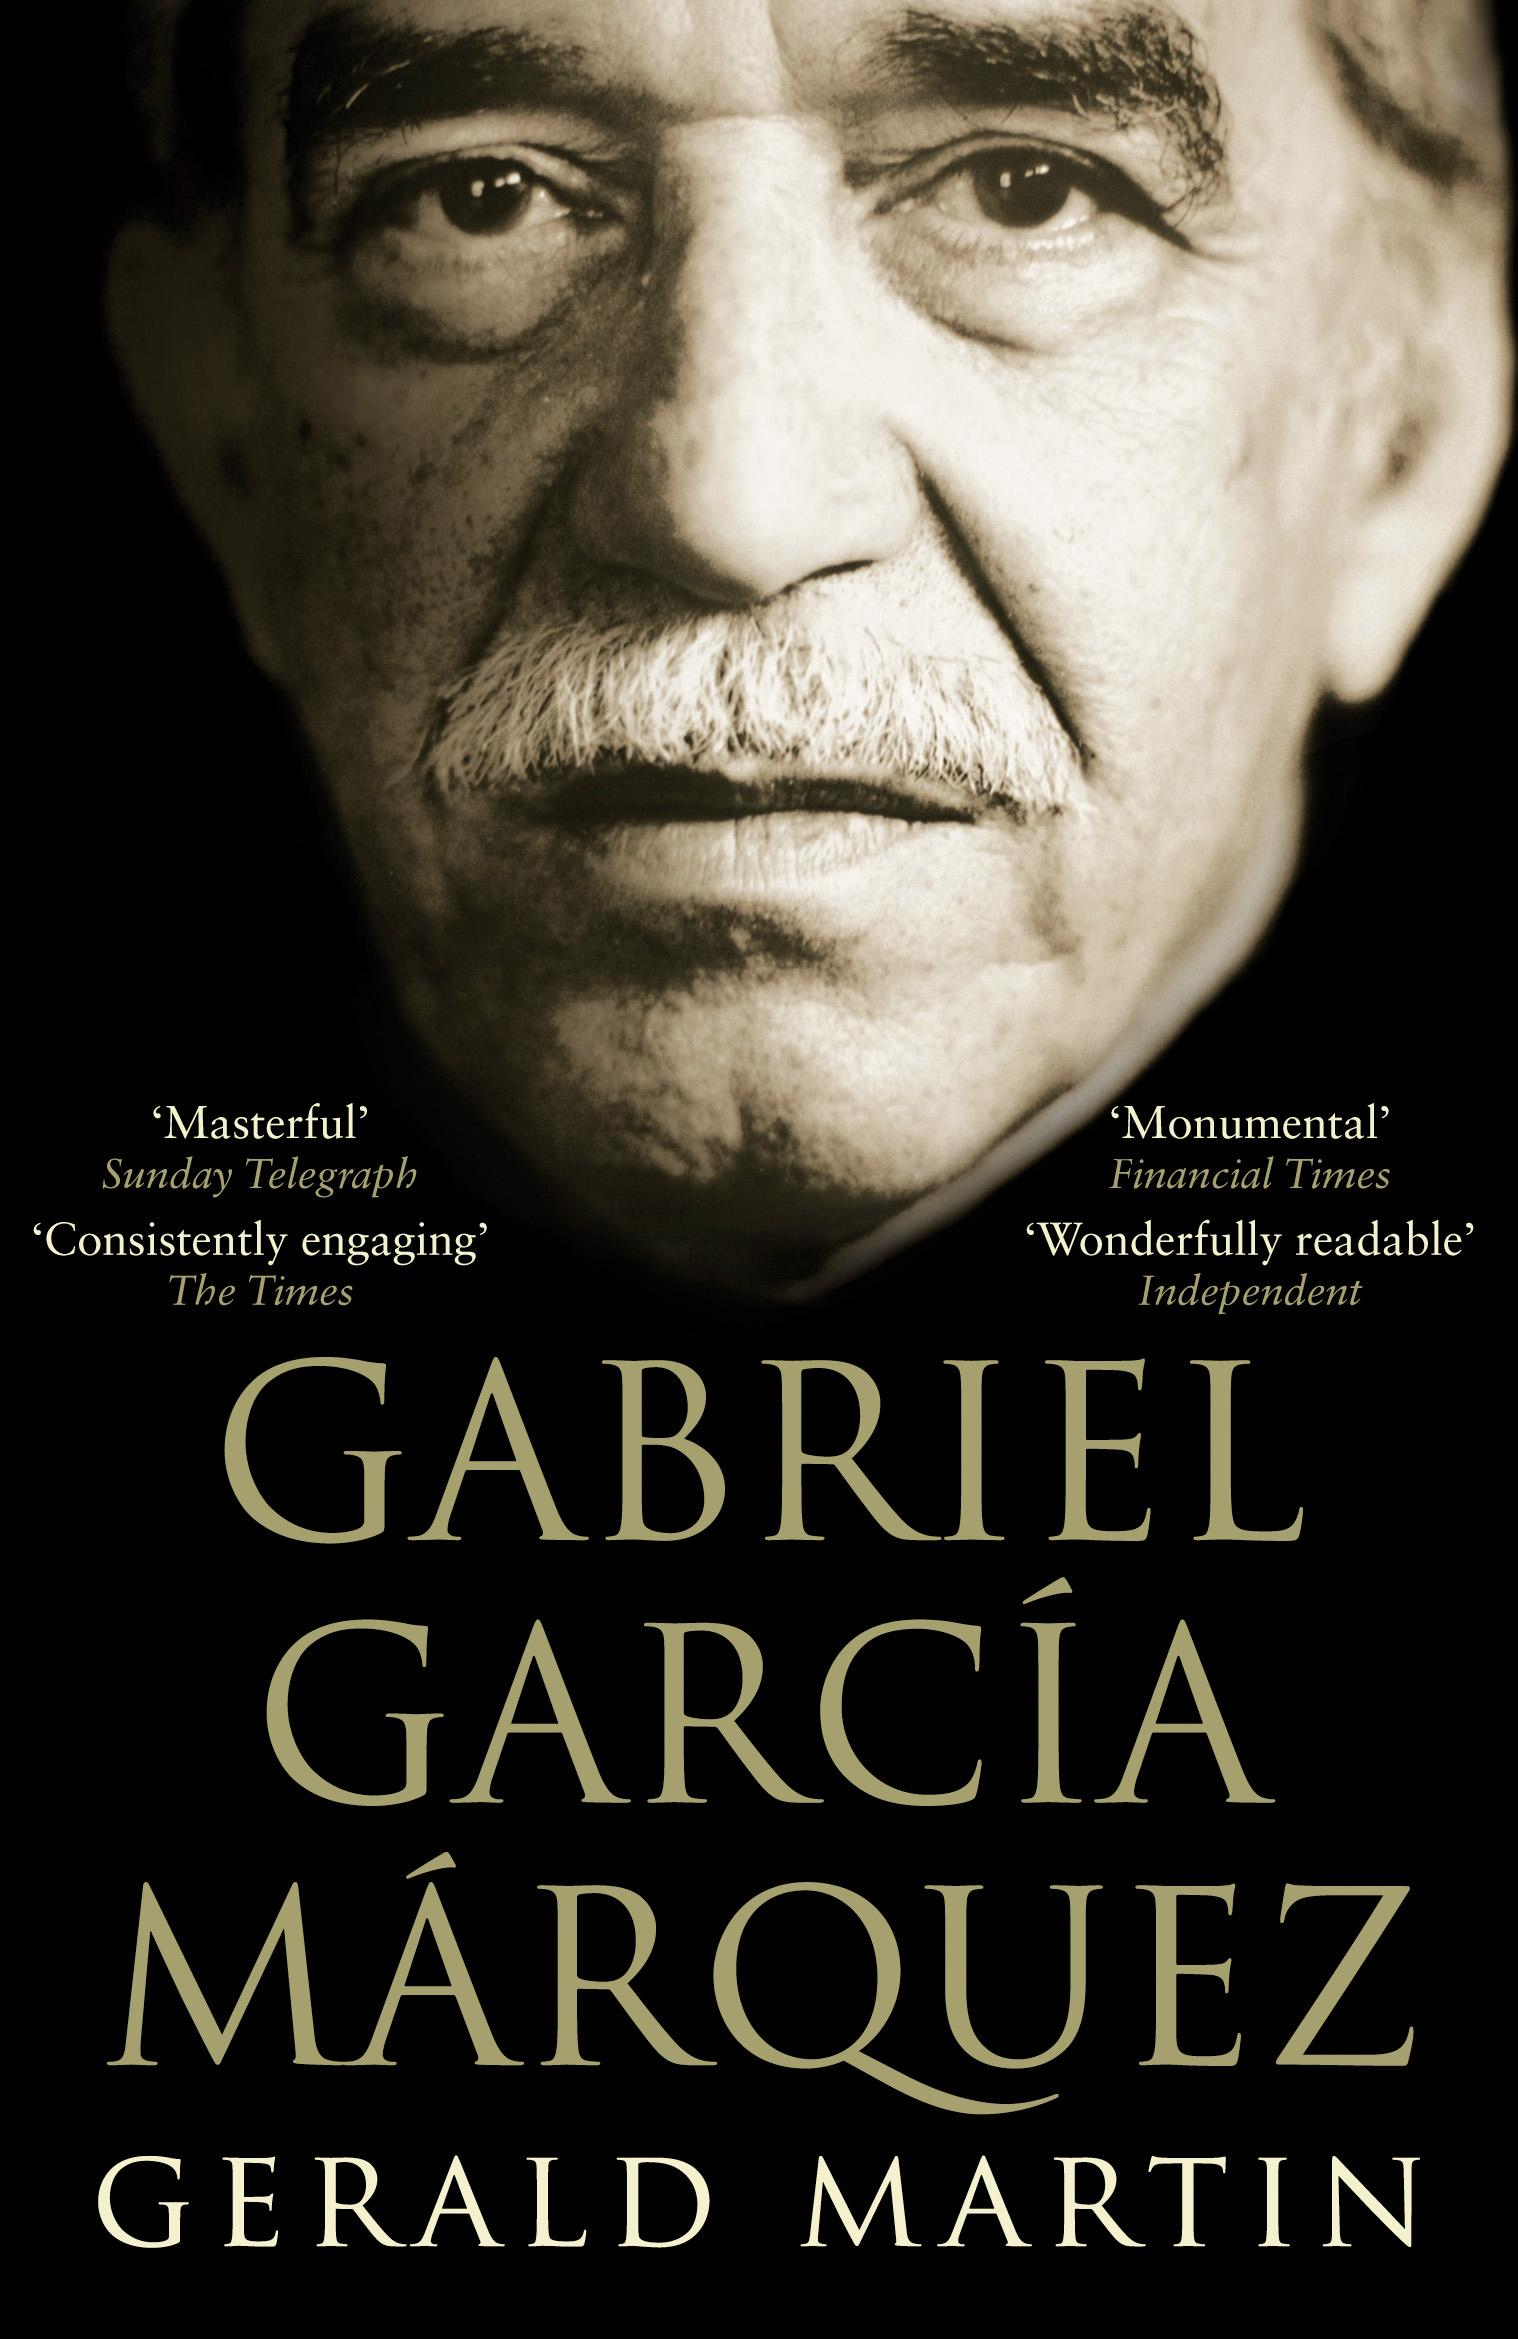 an analysis of news of a kidnapping a non fiction book by gabriel garcia marquez After reading what other readers have said about this book, it seems that many people were looking for gabriel garcia marquez to give this book the magical realism touch he's applied in his novels a number of people were disappointed by the fact that this book is a journalistic take on events, rather than a novel.